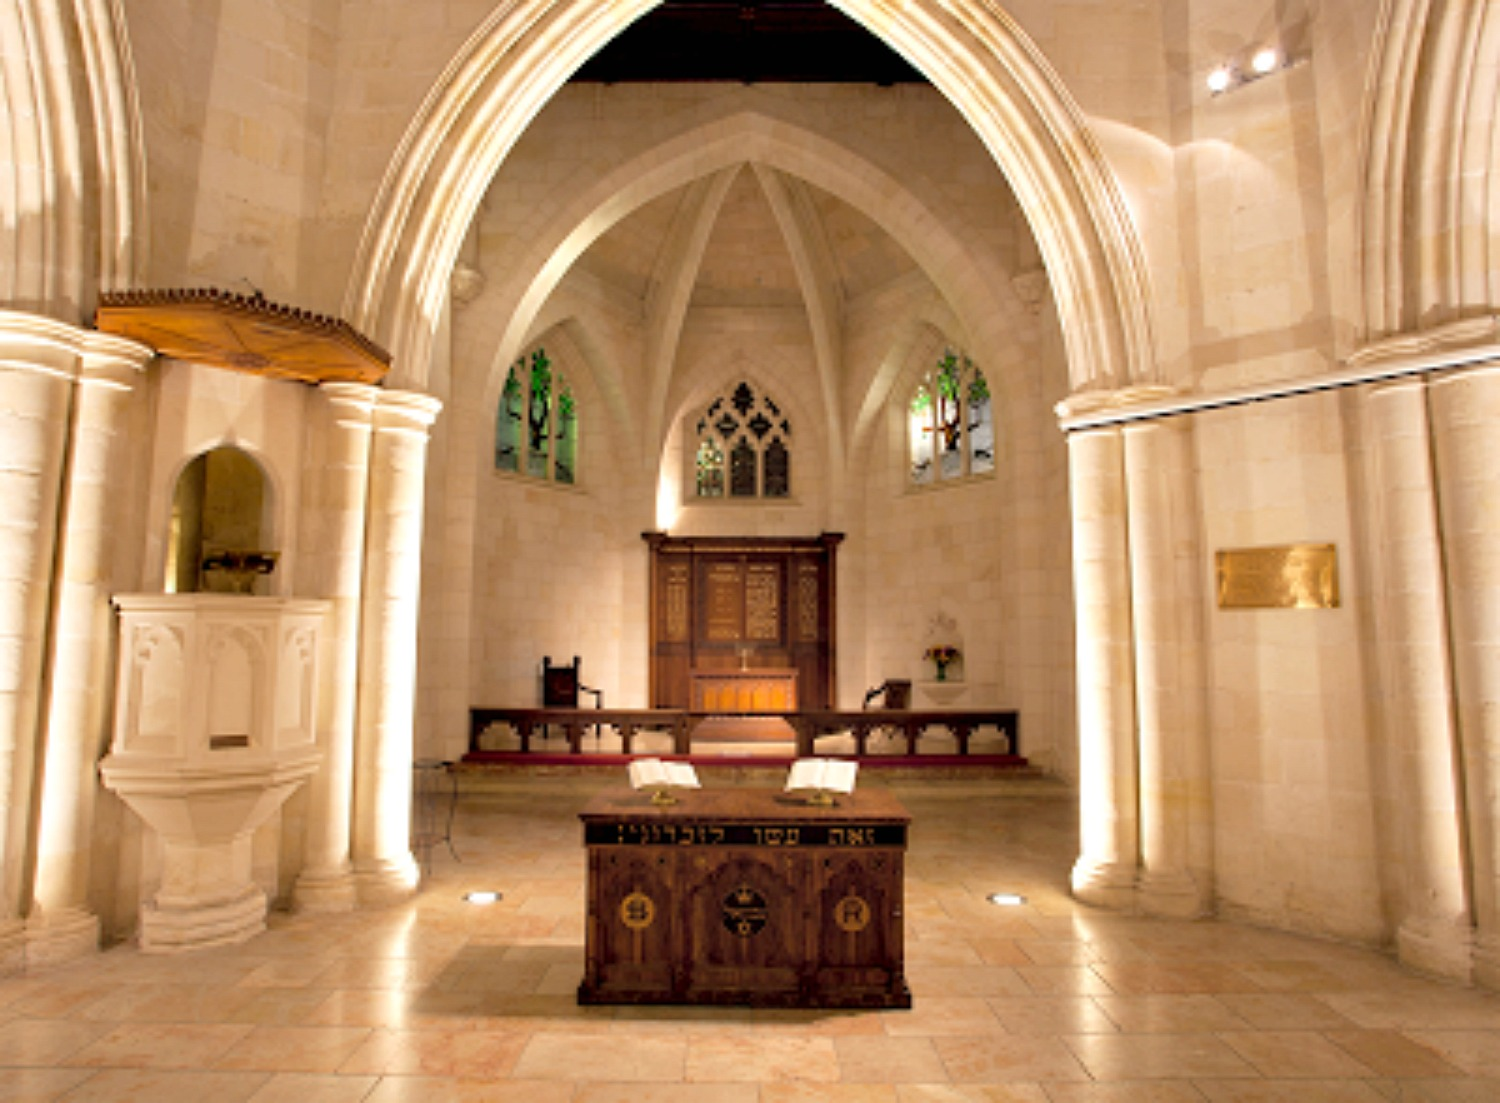 Christ Church Picture: How To Pray For God's Peace Plan For Jerusalem Part 2 Of 3